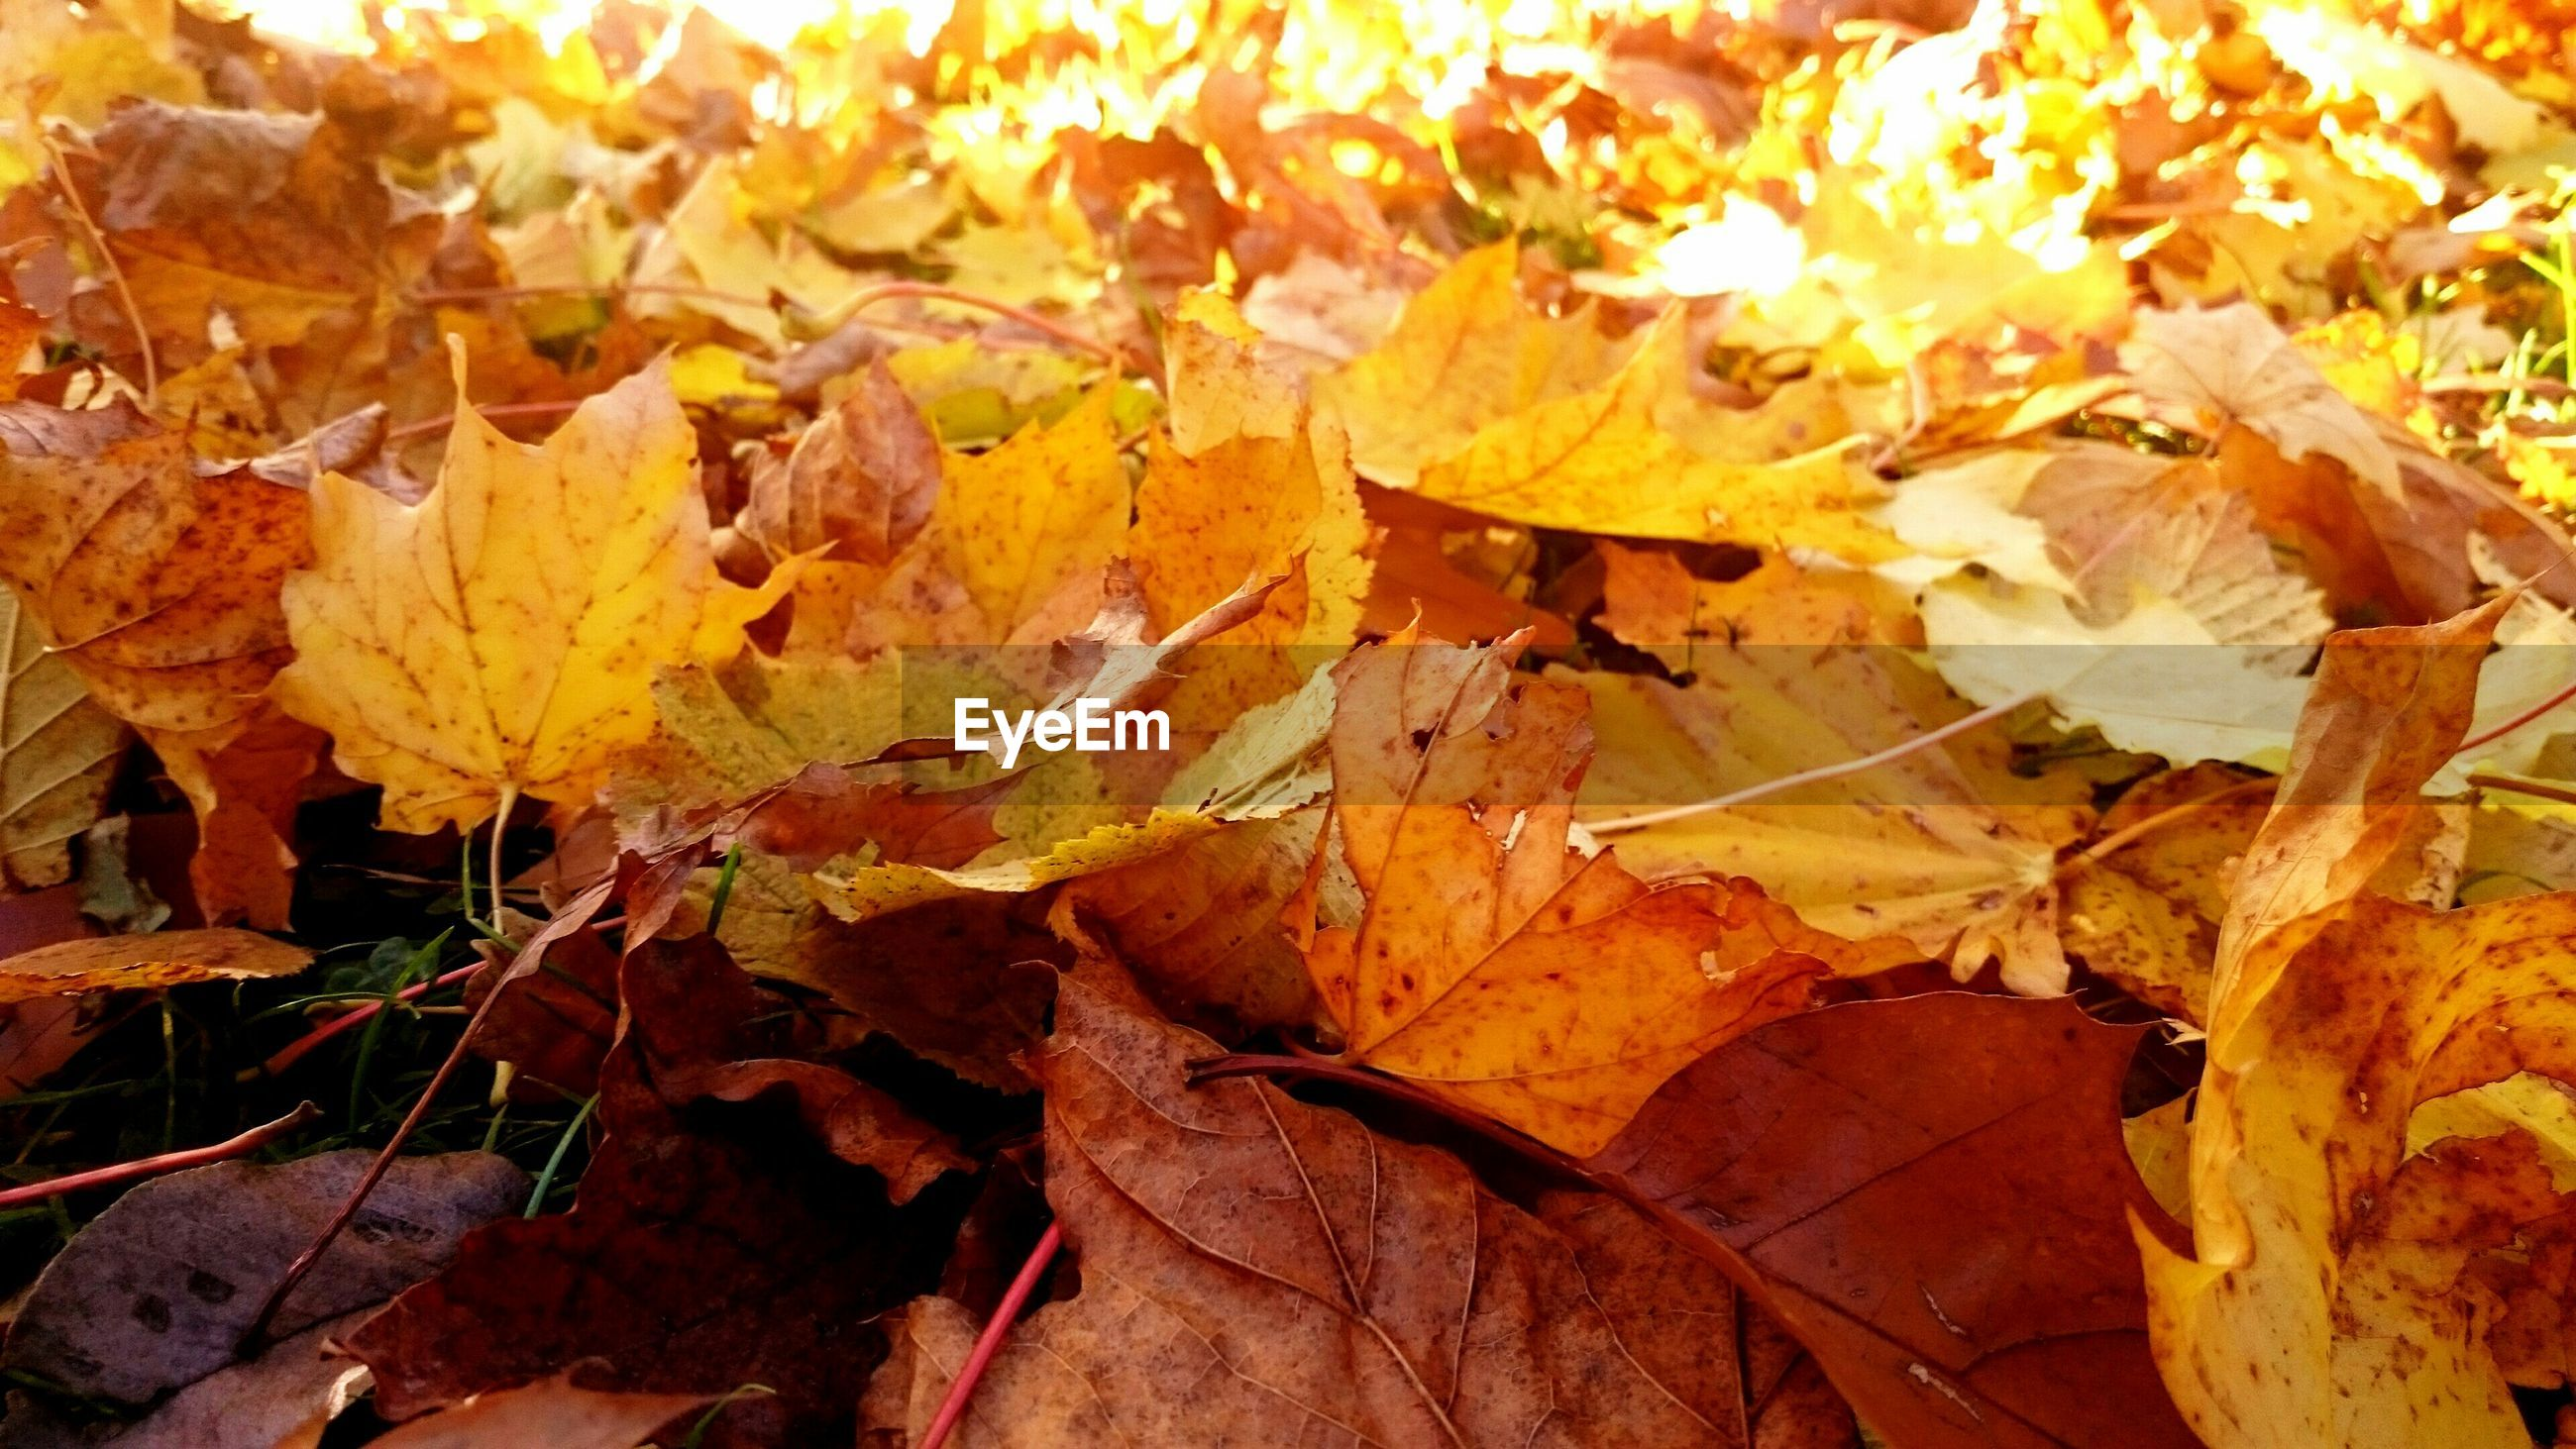 autumn, leaf, change, leaves, season, dry, yellow, fallen, orange color, full frame, nature, close-up, backgrounds, maple leaf, leaf vein, falling, natural pattern, day, outdoors, sunlight